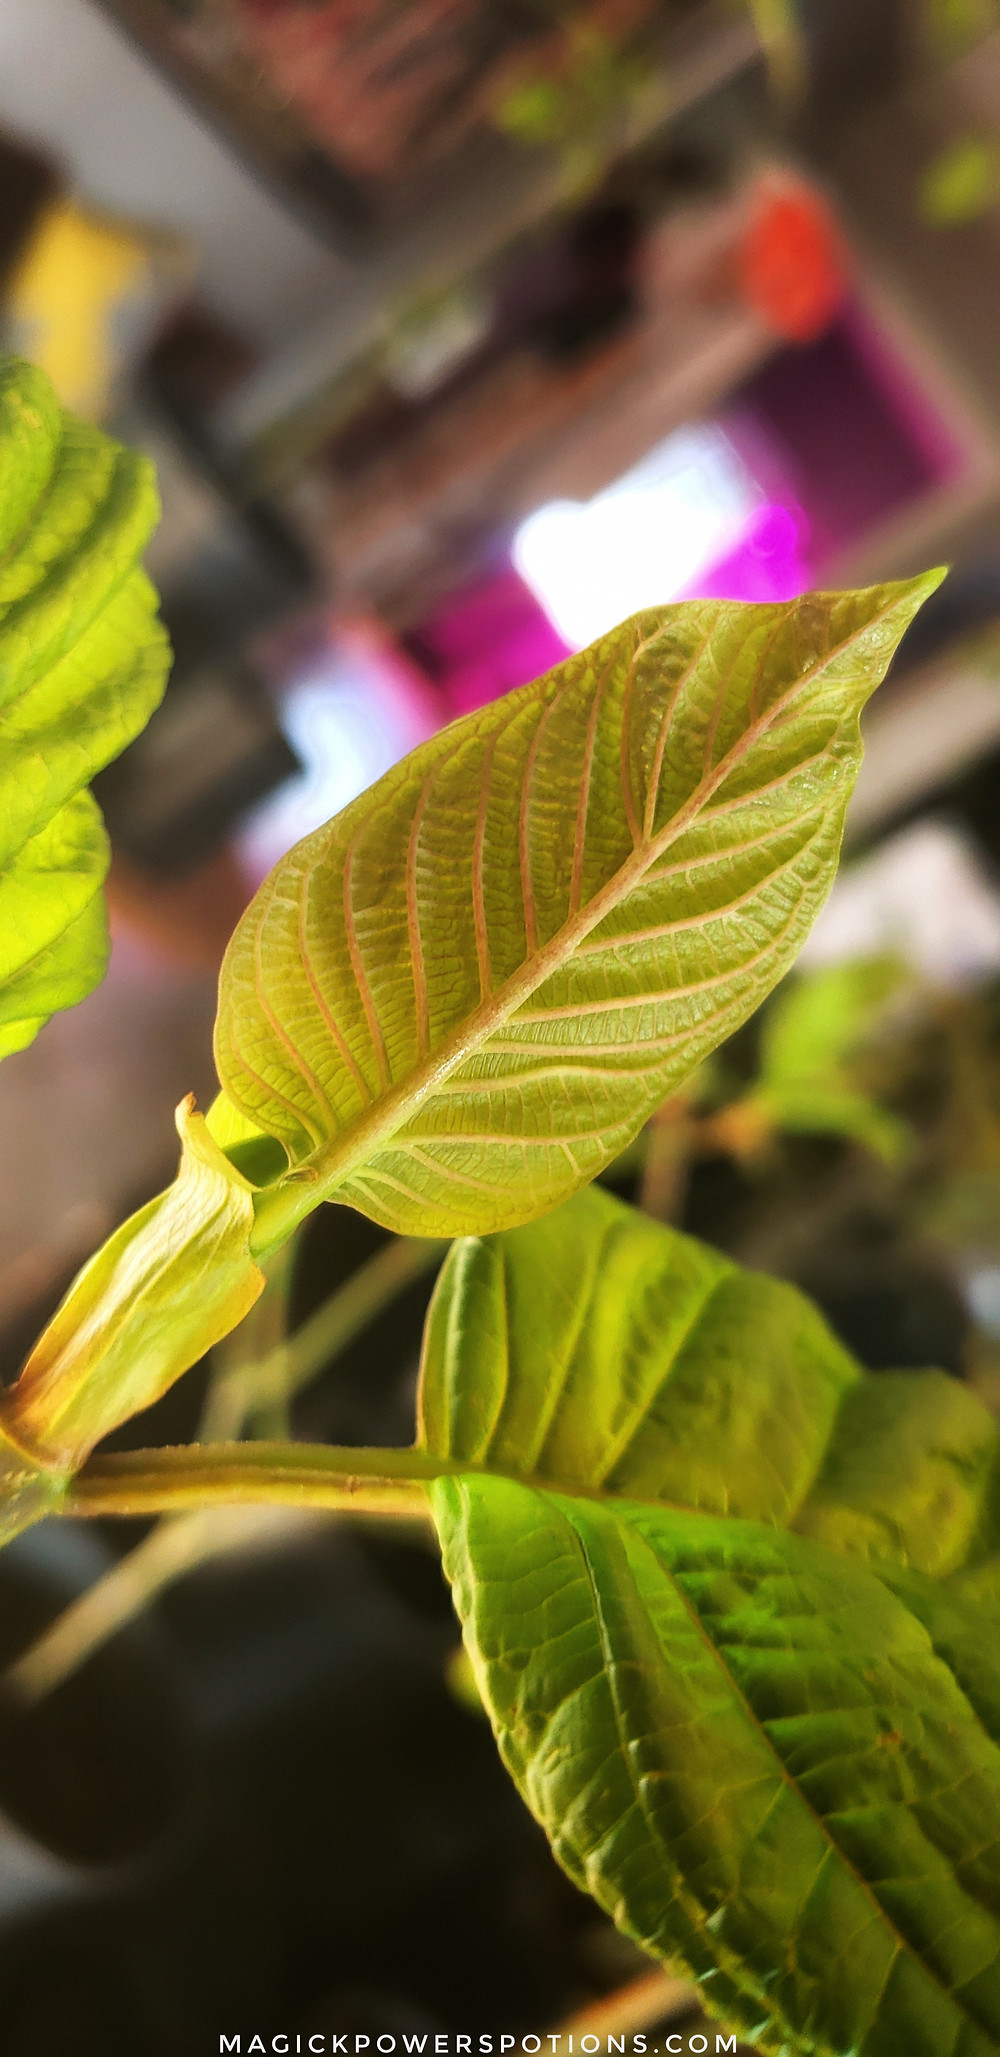 Thick and veinous, the new growth on this young kratom tree is coming in pear yellow with peach veins. It will unfold into a jewel green and the veins will darken.